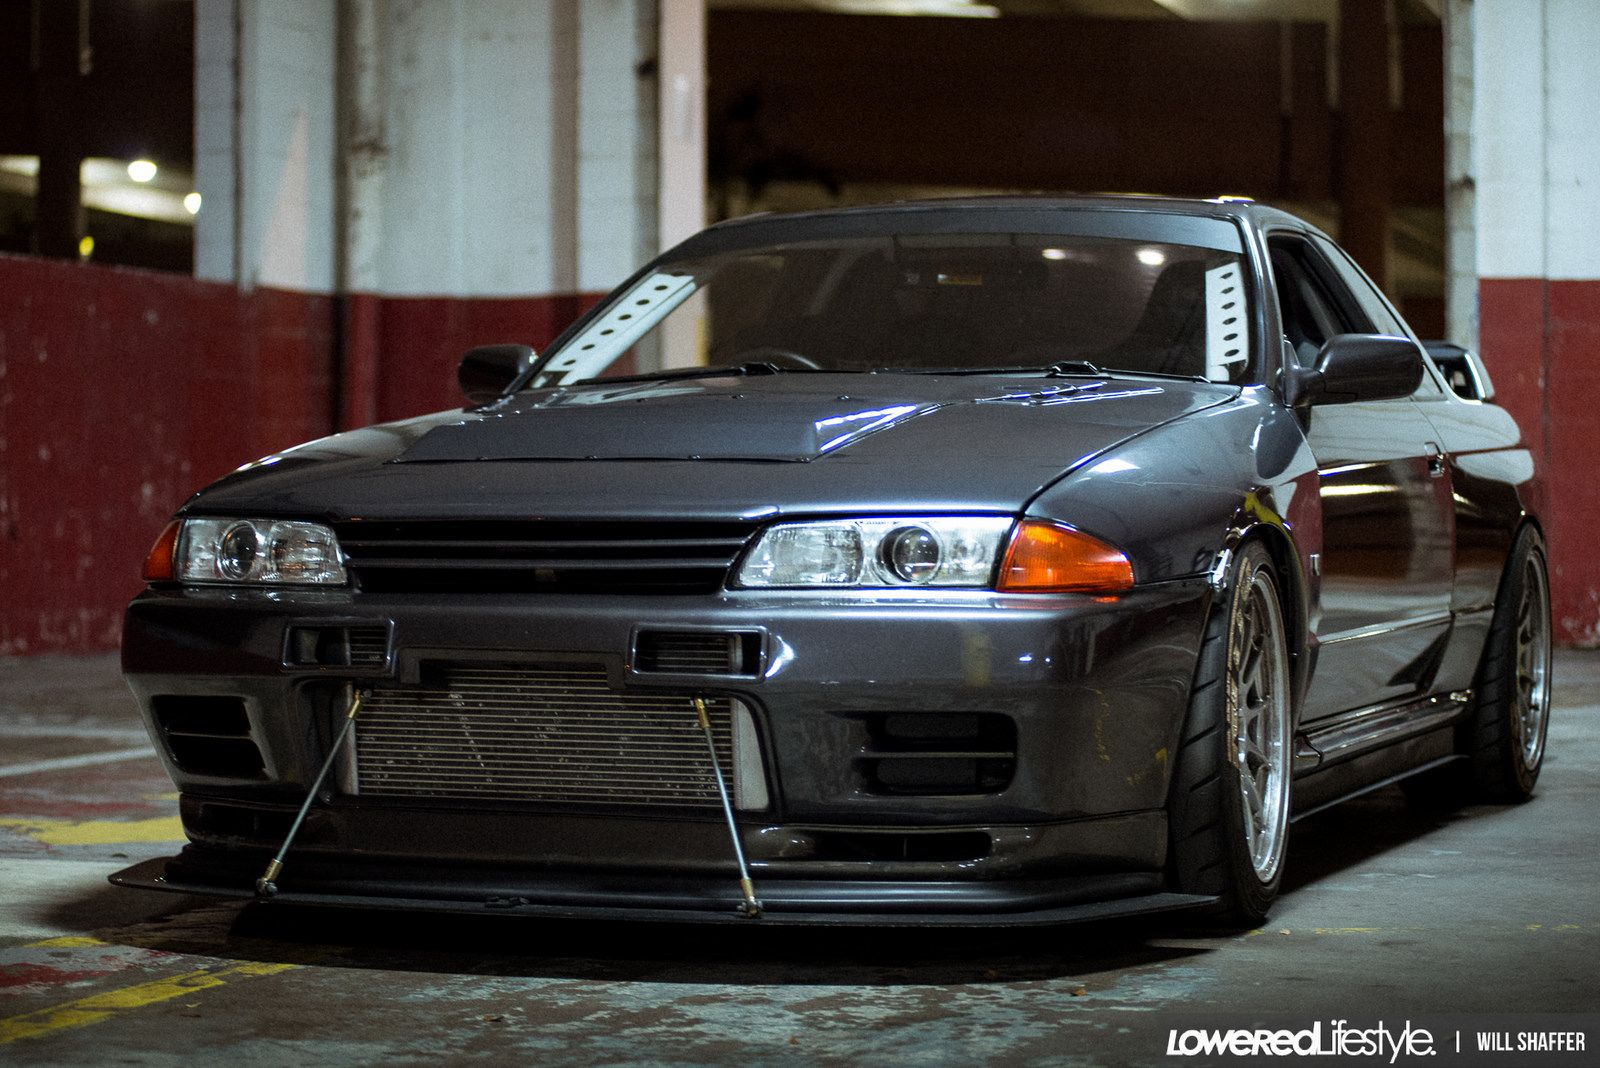 https://flic.kr/p/Ej7Zak | Tk's GTR | r32 GTR for Lowered Lifestyle